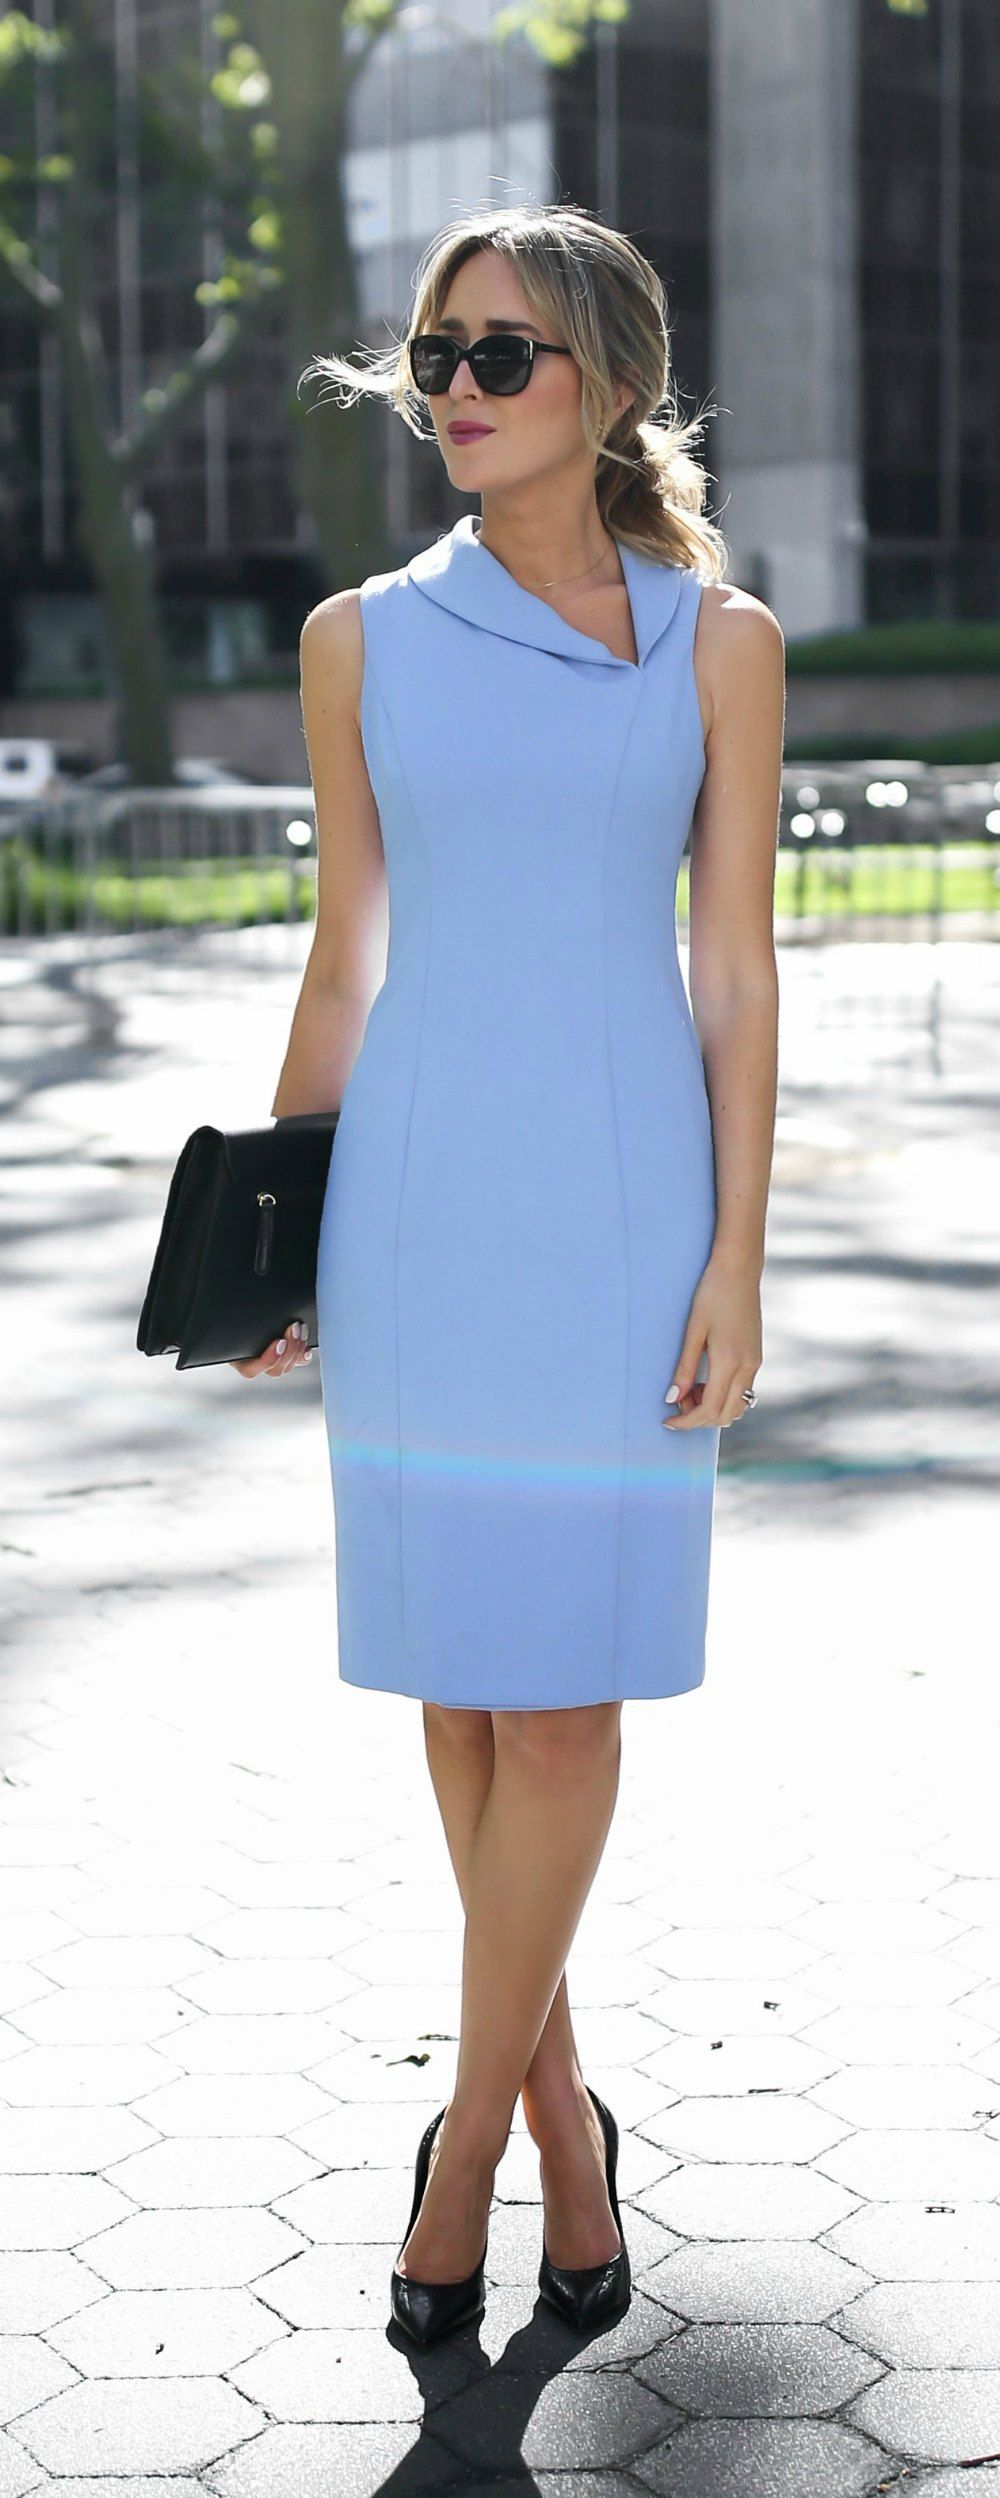 f1bffed065 classic periwinkle blue knee length sheath dress with asymmetrical shawl  collar neckline // summer business formal workwear, office style